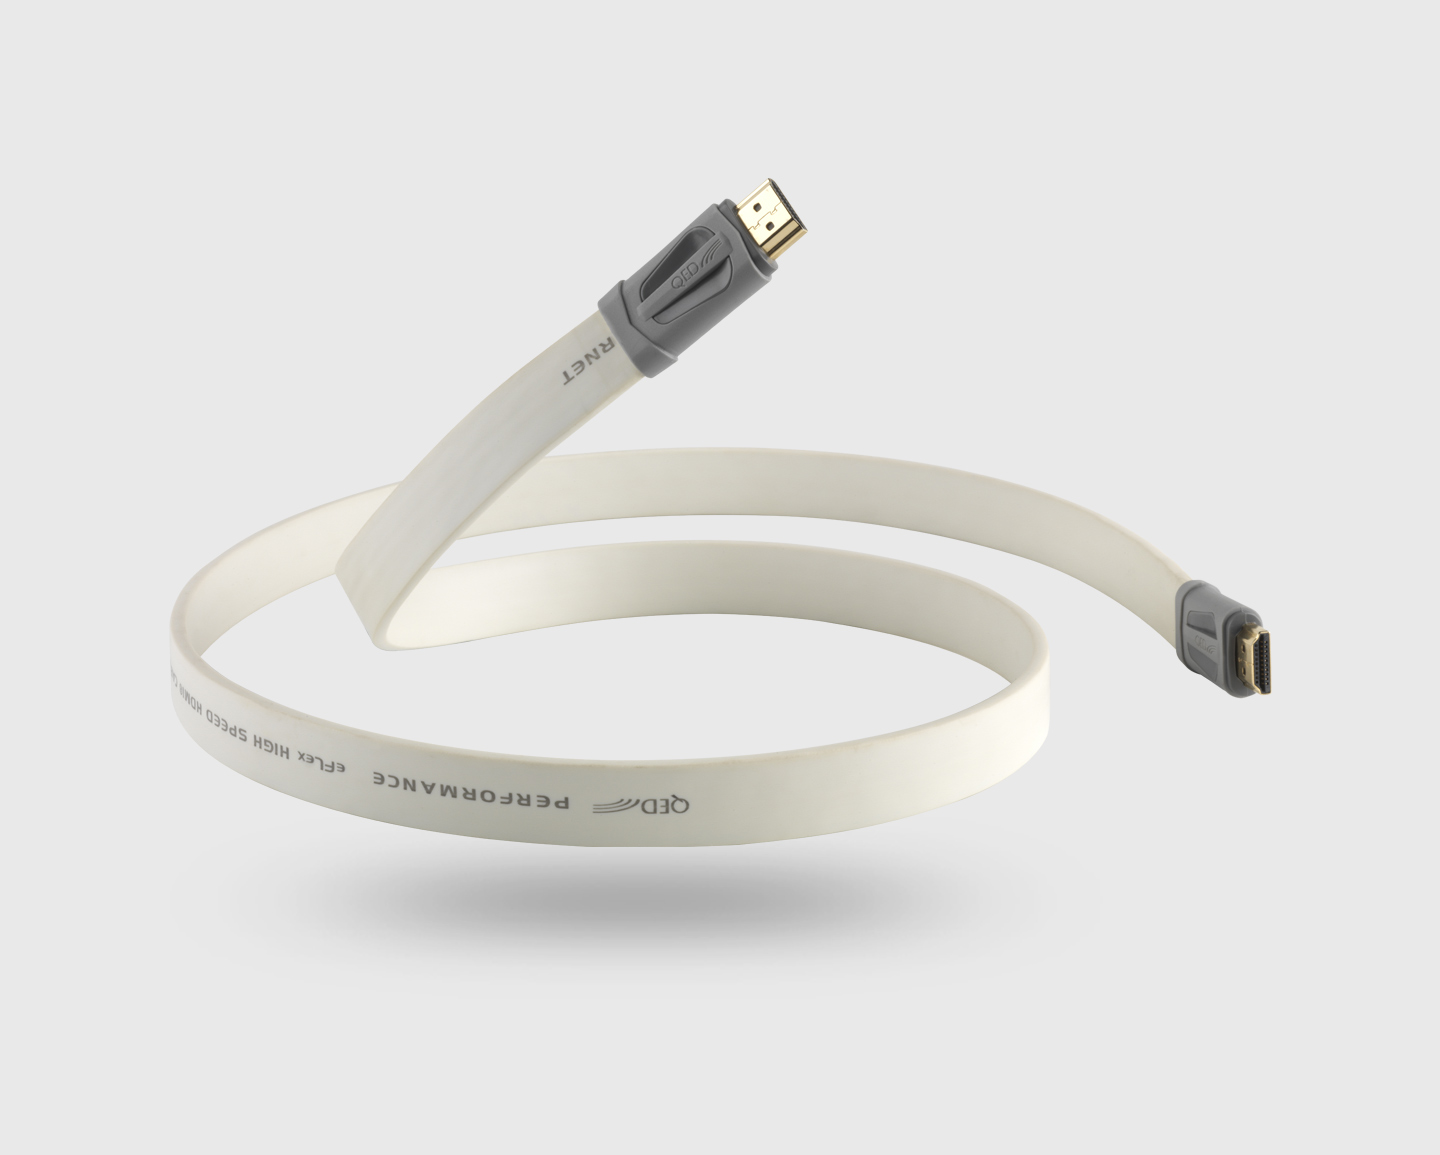 QED QE7400 PERFORMANCE 1 metre eFlex HDMI Cable in White with Ethernet